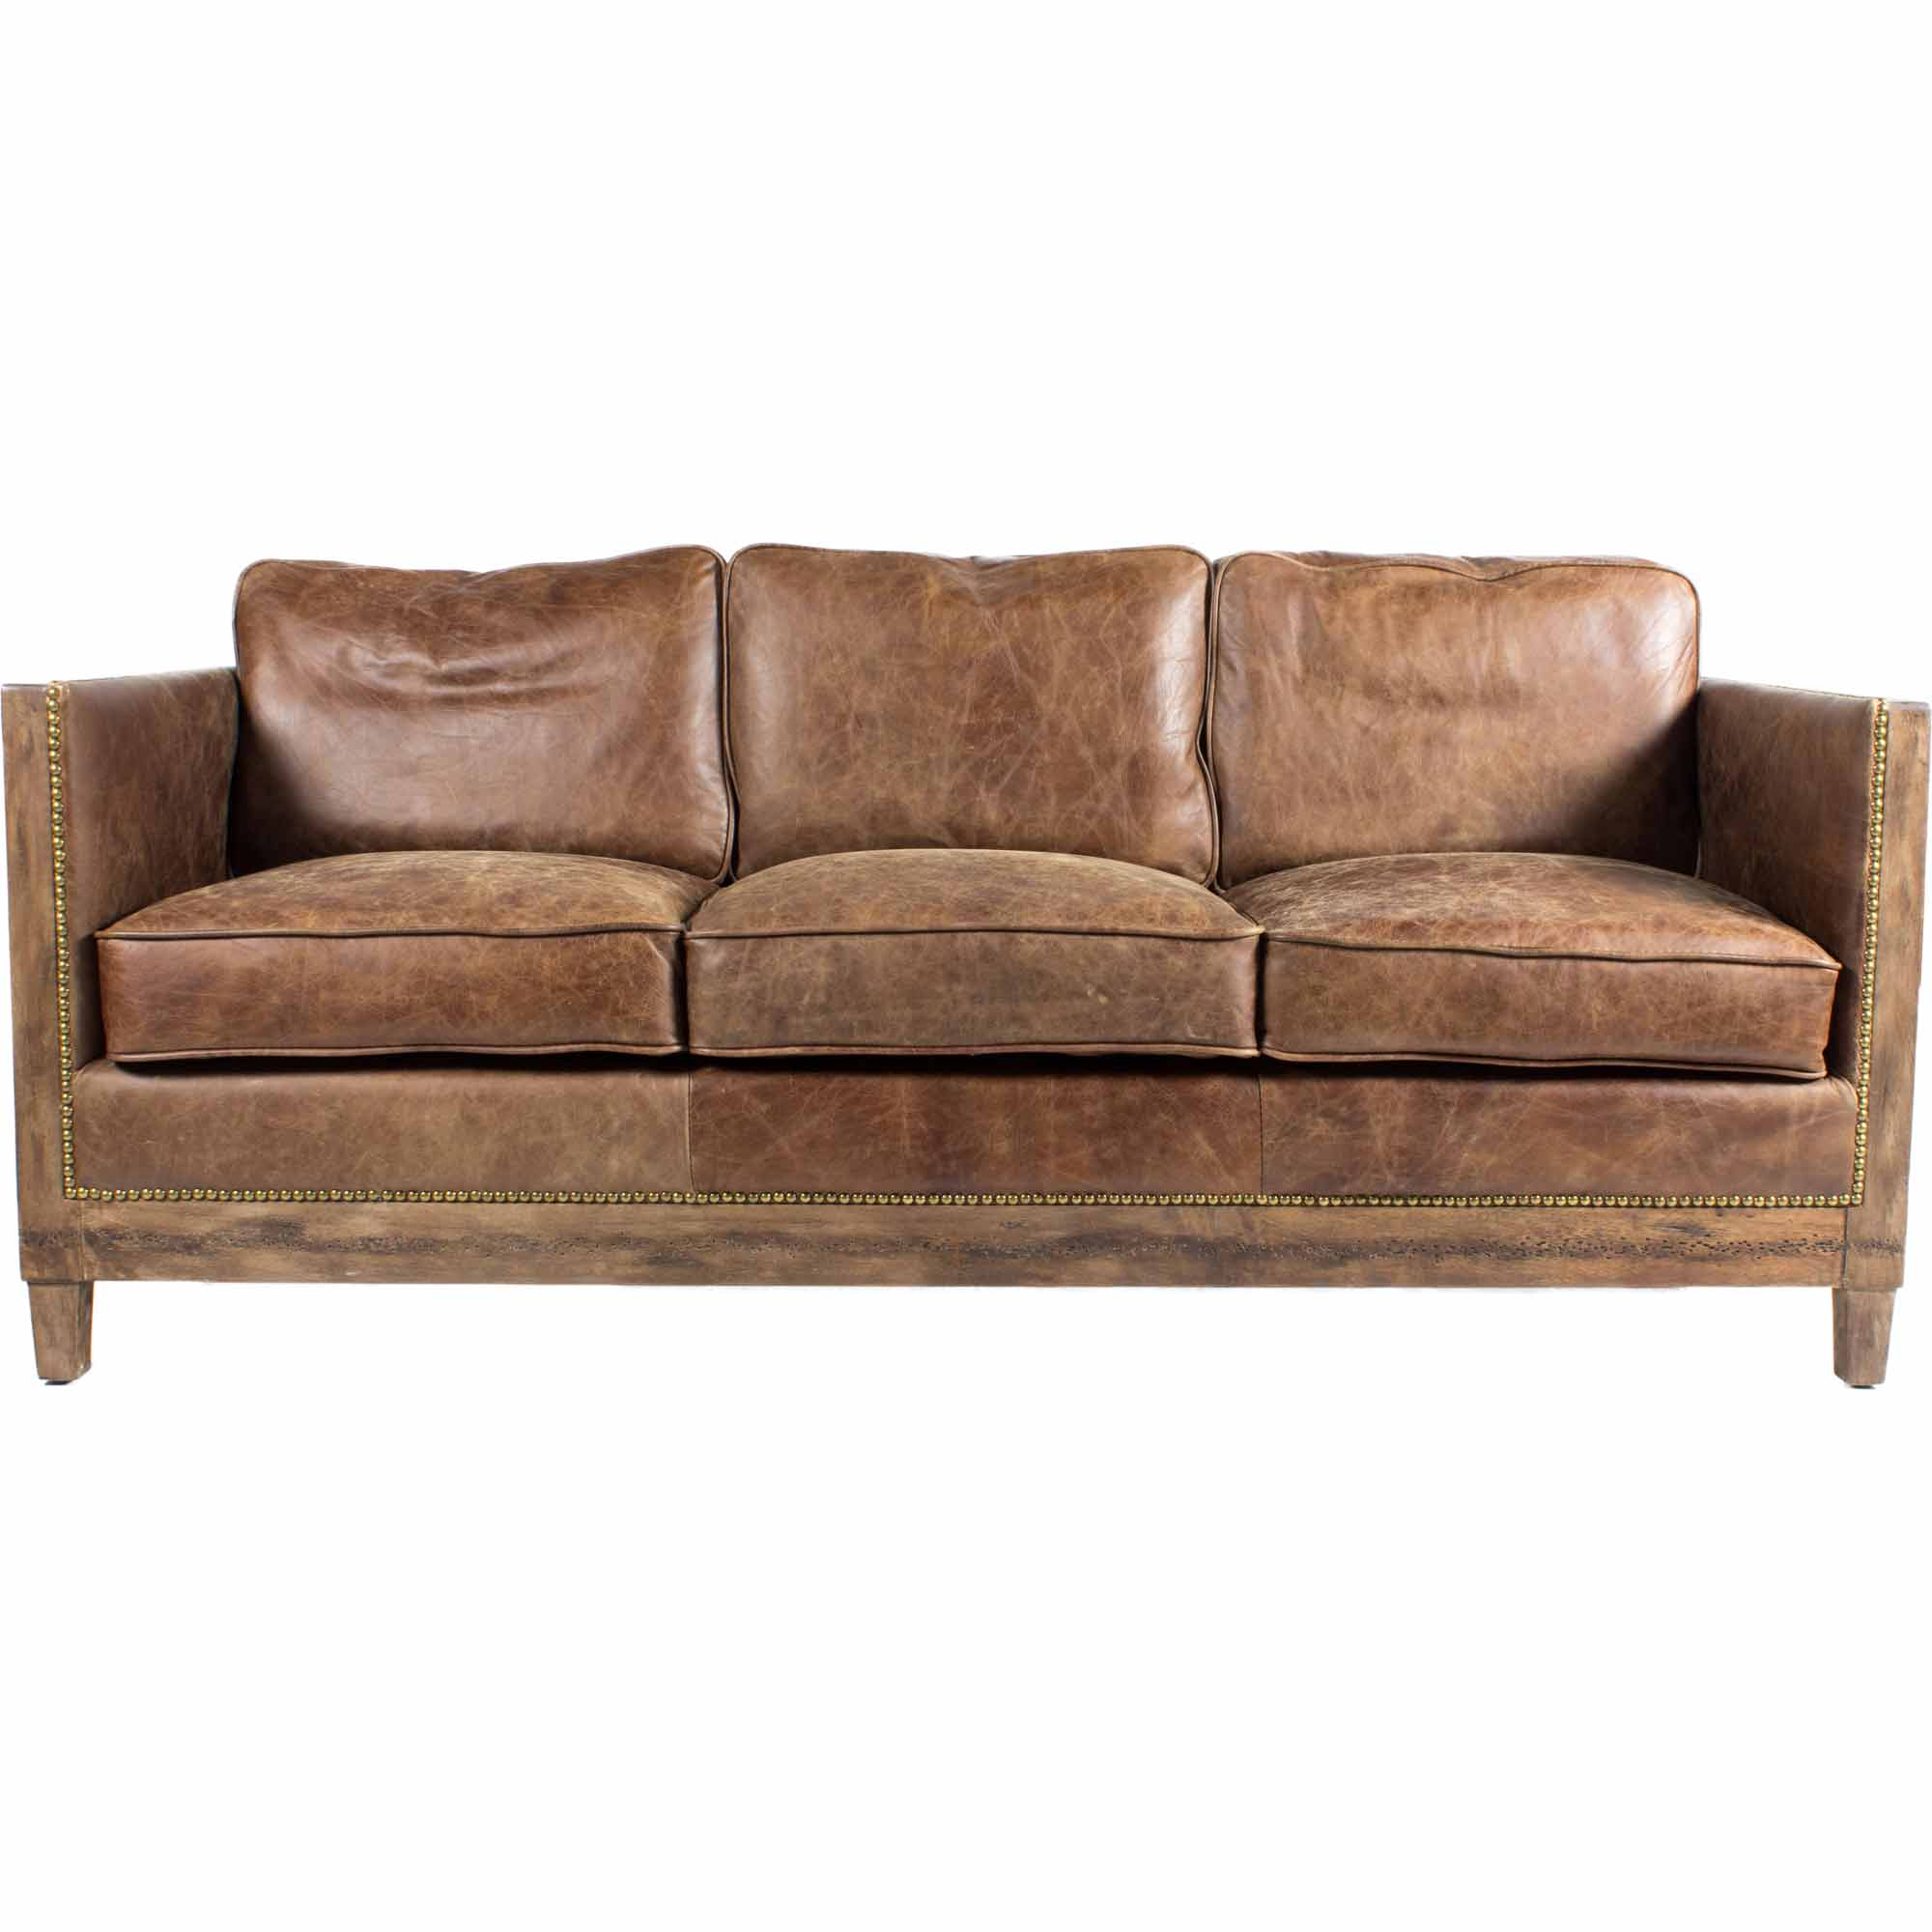 DARLINGTON SOFA, Brown - Tops-Dress